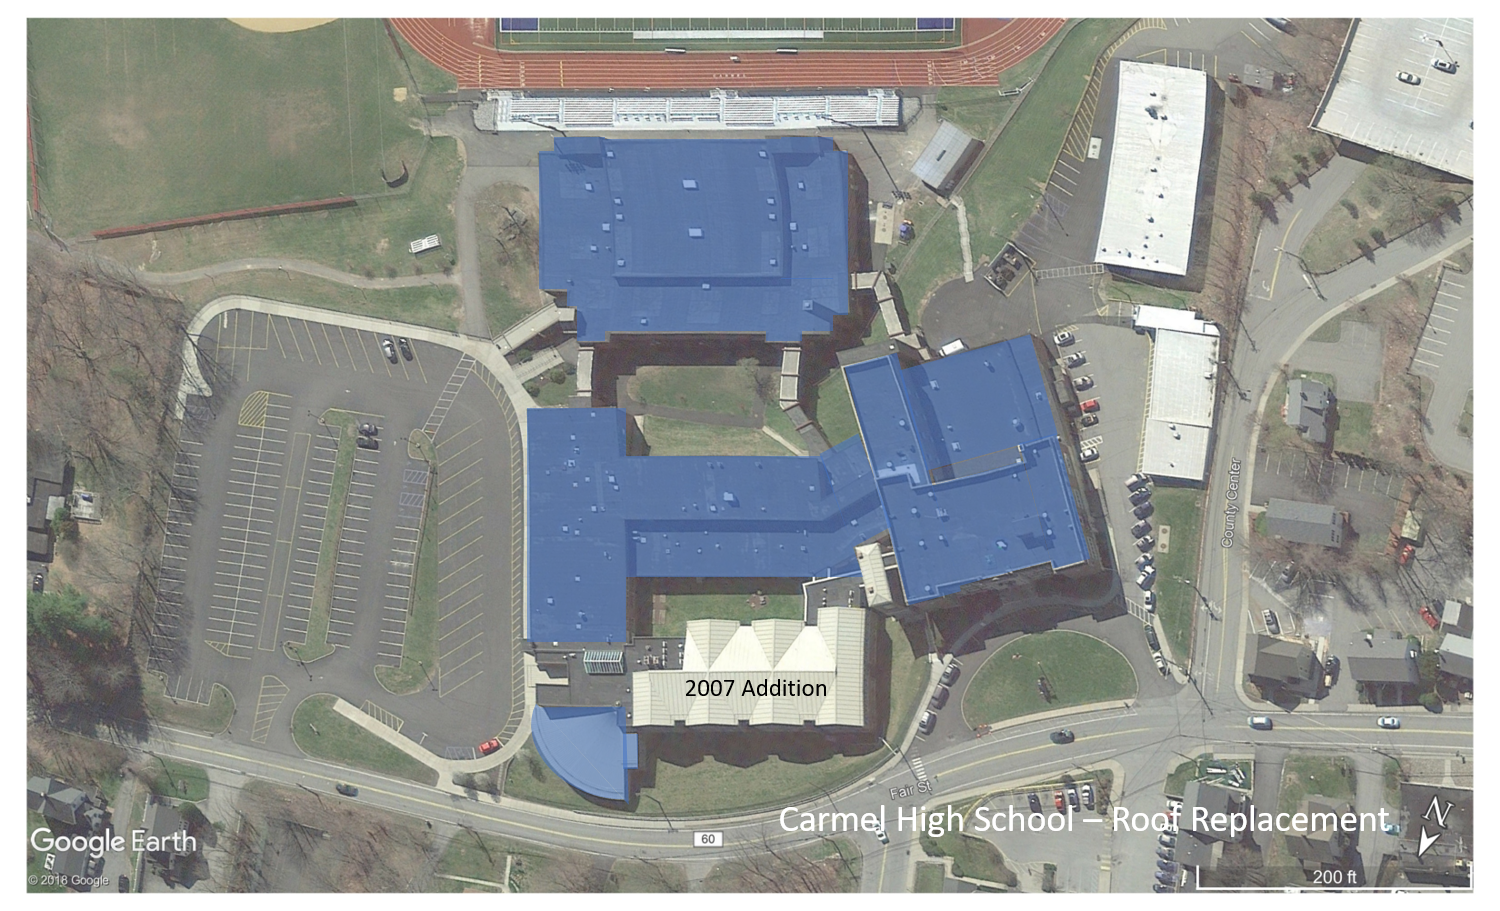 Carmel High School (replacement sections are shown in blue)